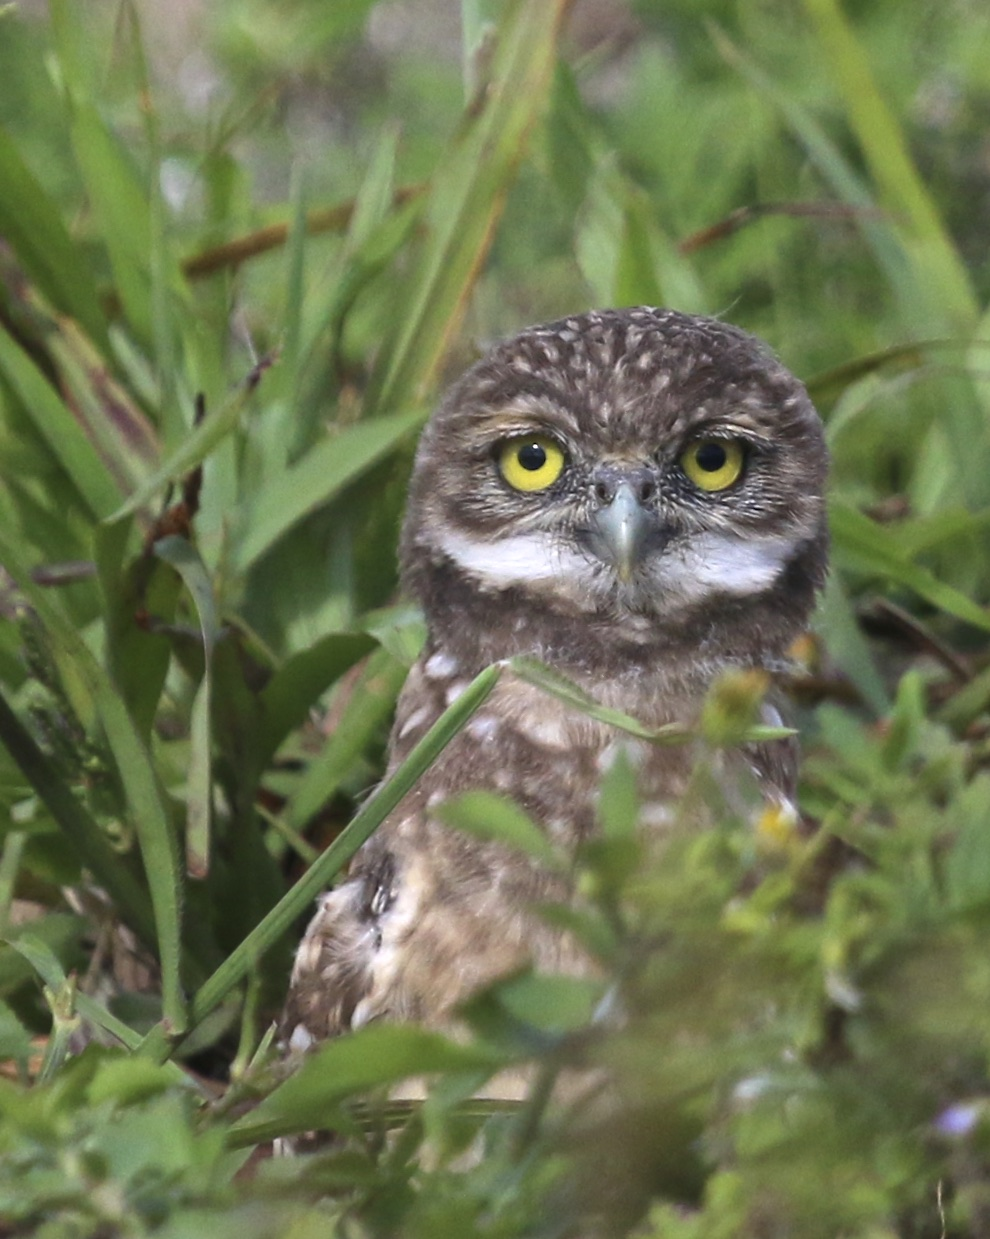 ~Close up of one of the young Burrowing Owls, Cape Coral Florida, 5/5/15.~